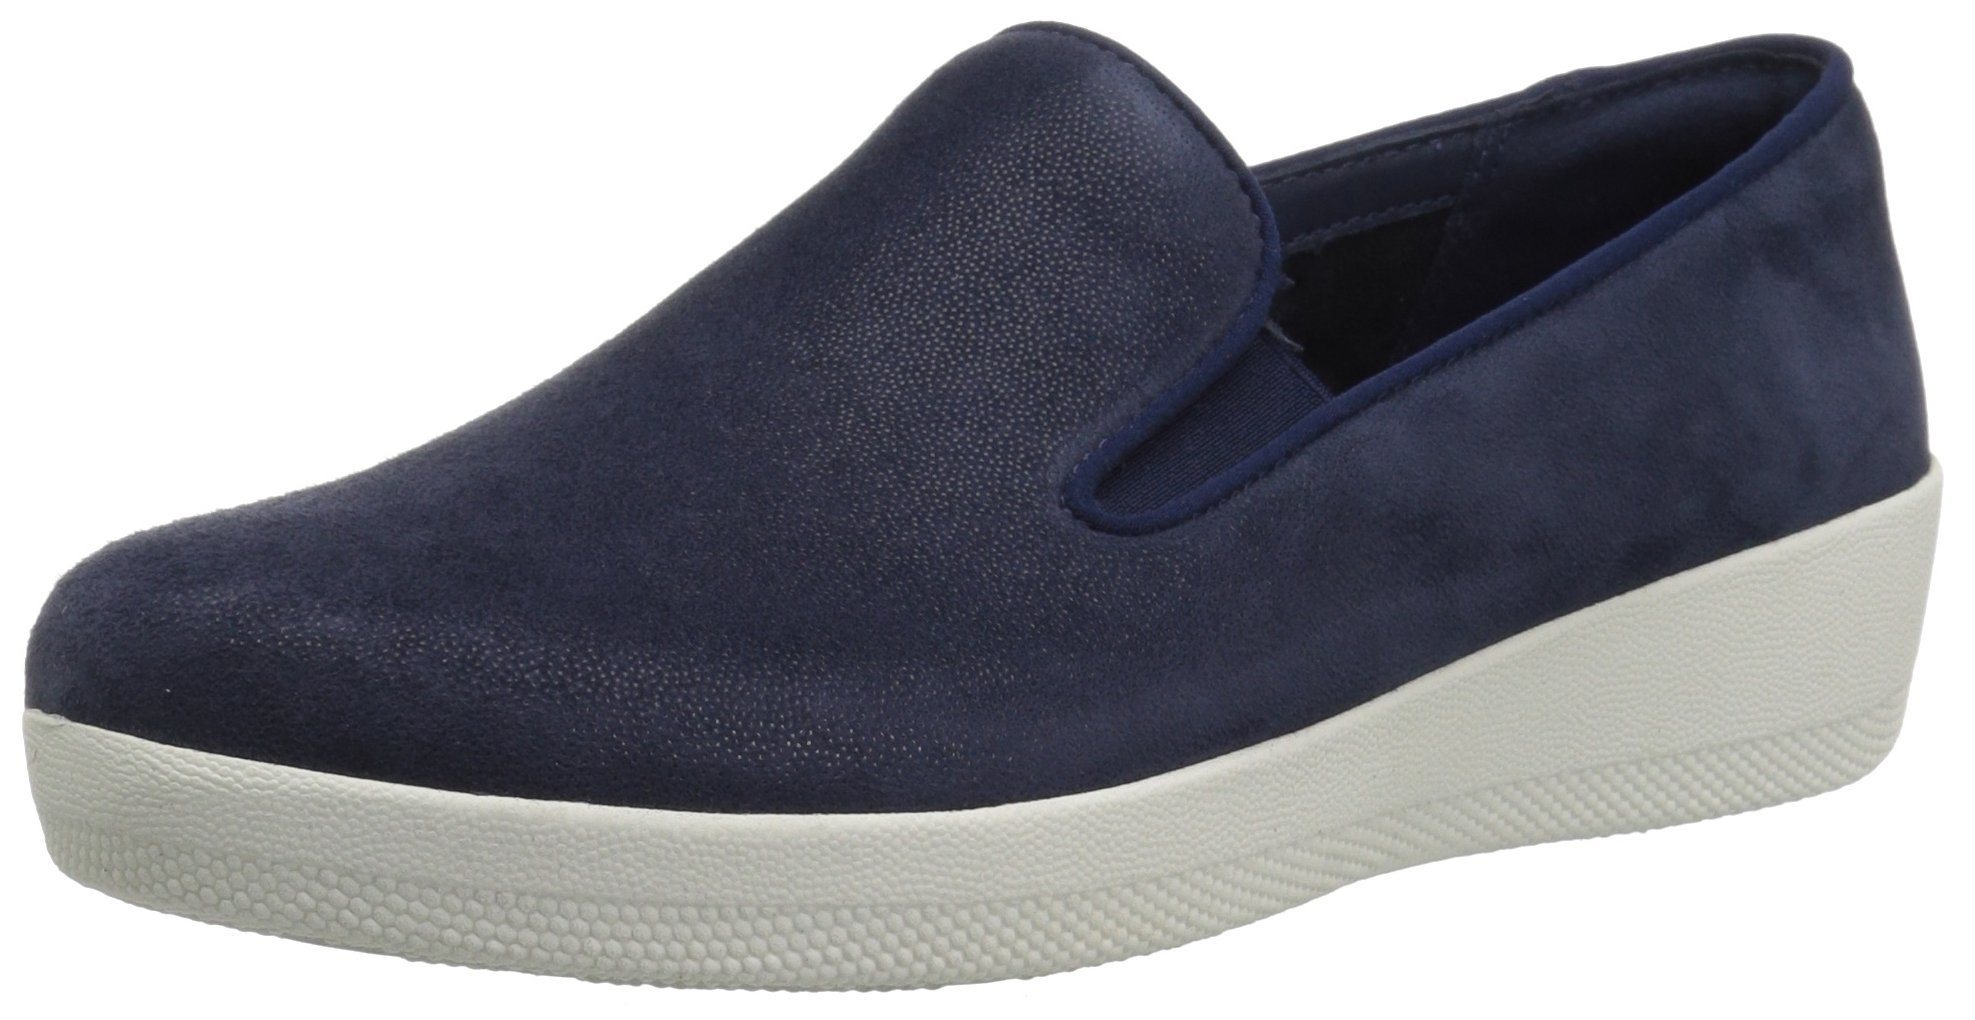 FitFlop Women's Superskate Loafer Flat, Midnight Navy, 7.5 M US